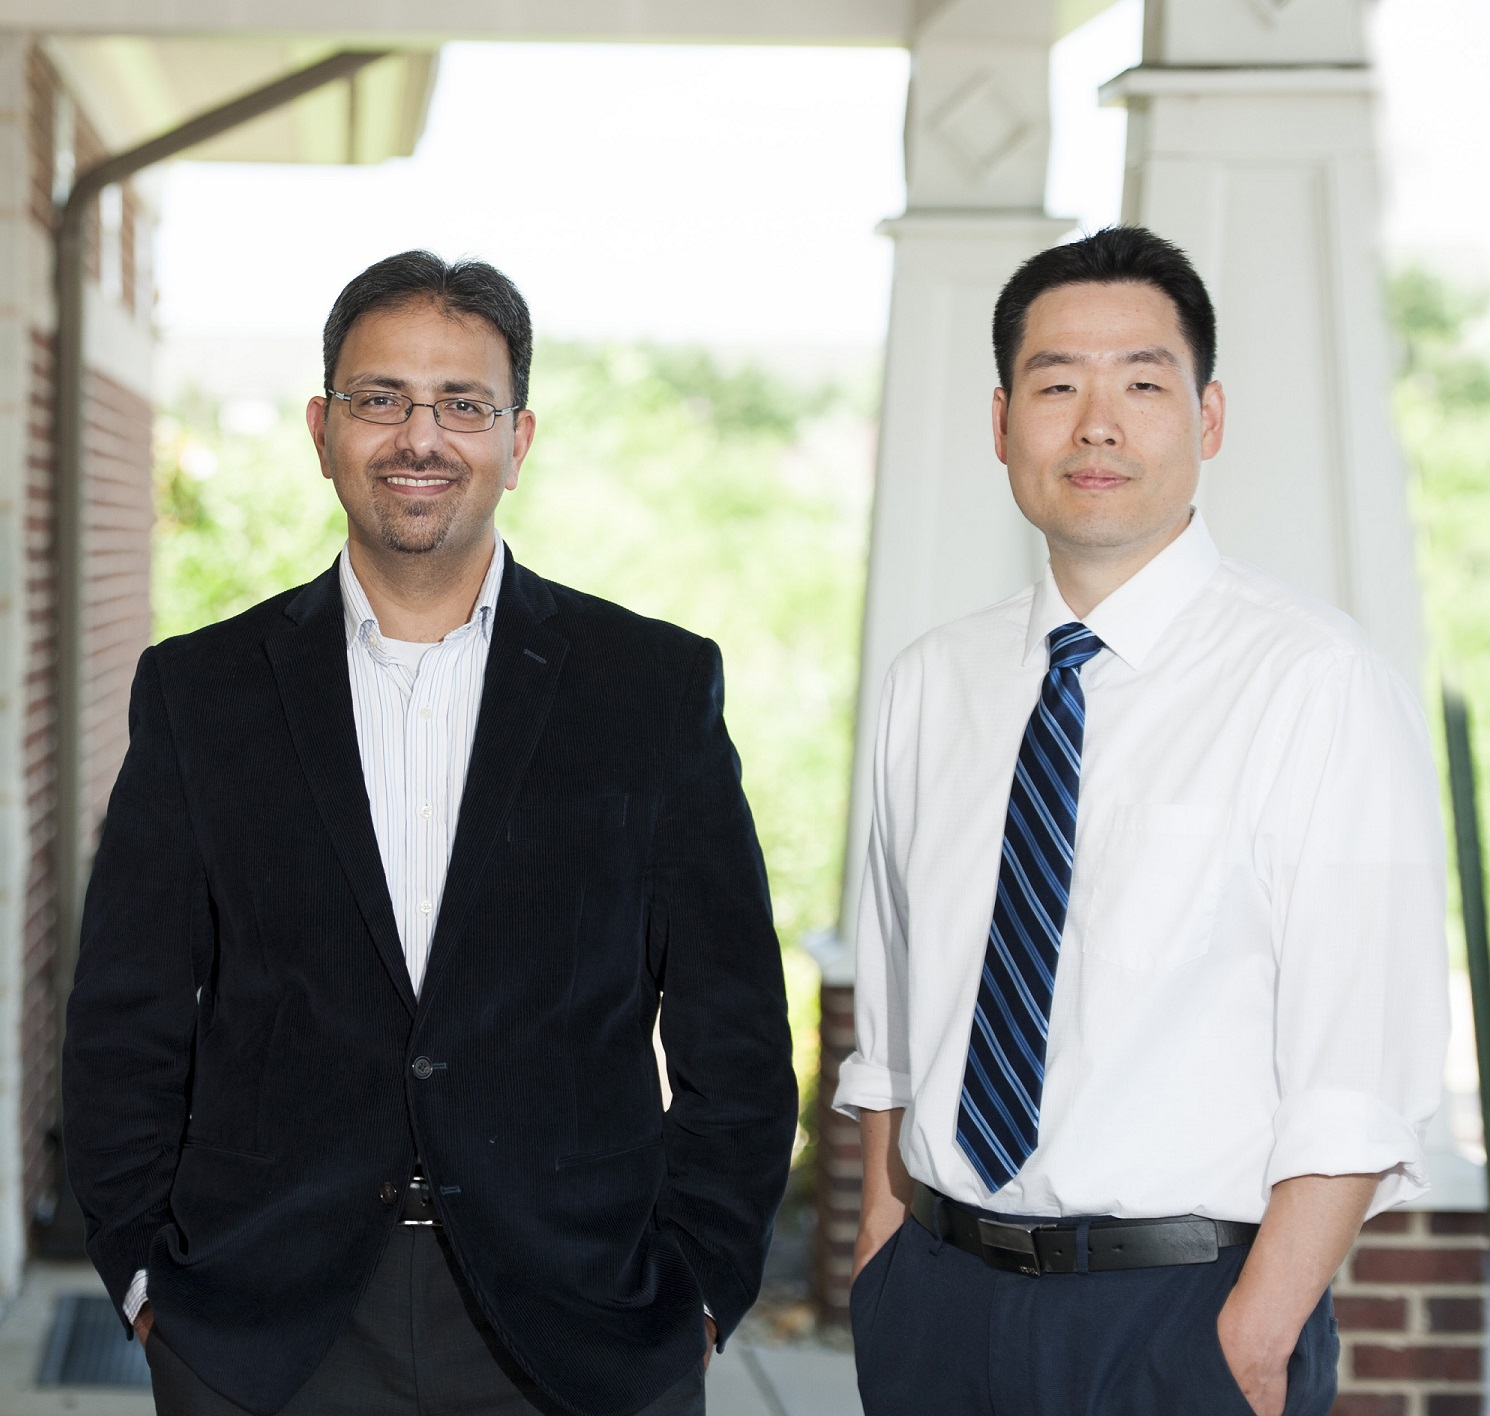 Photo of Dr. Seokhan Kyle Song and Dr. Ahmed Fida from the Family Practice at Bealeton